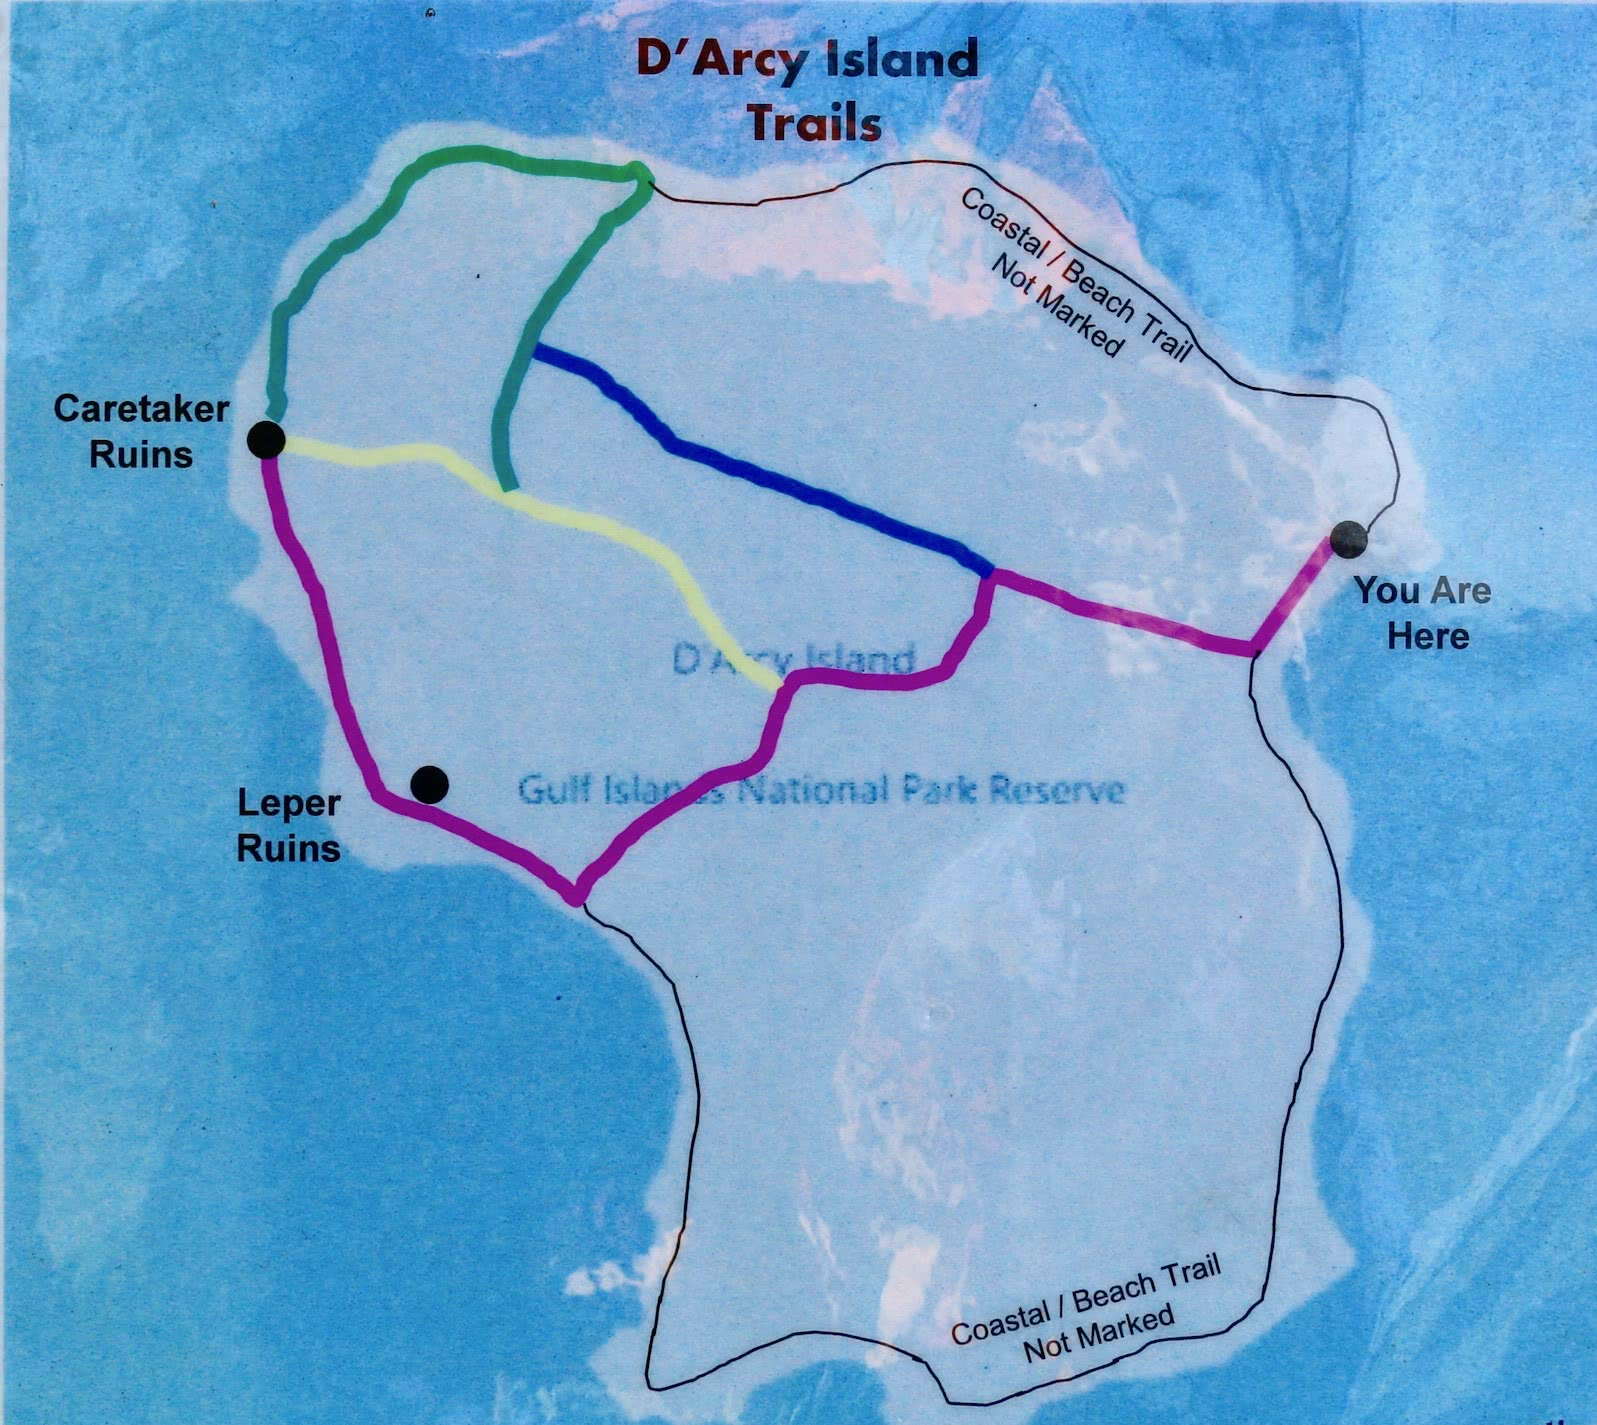 D'Arcy Island Trail map